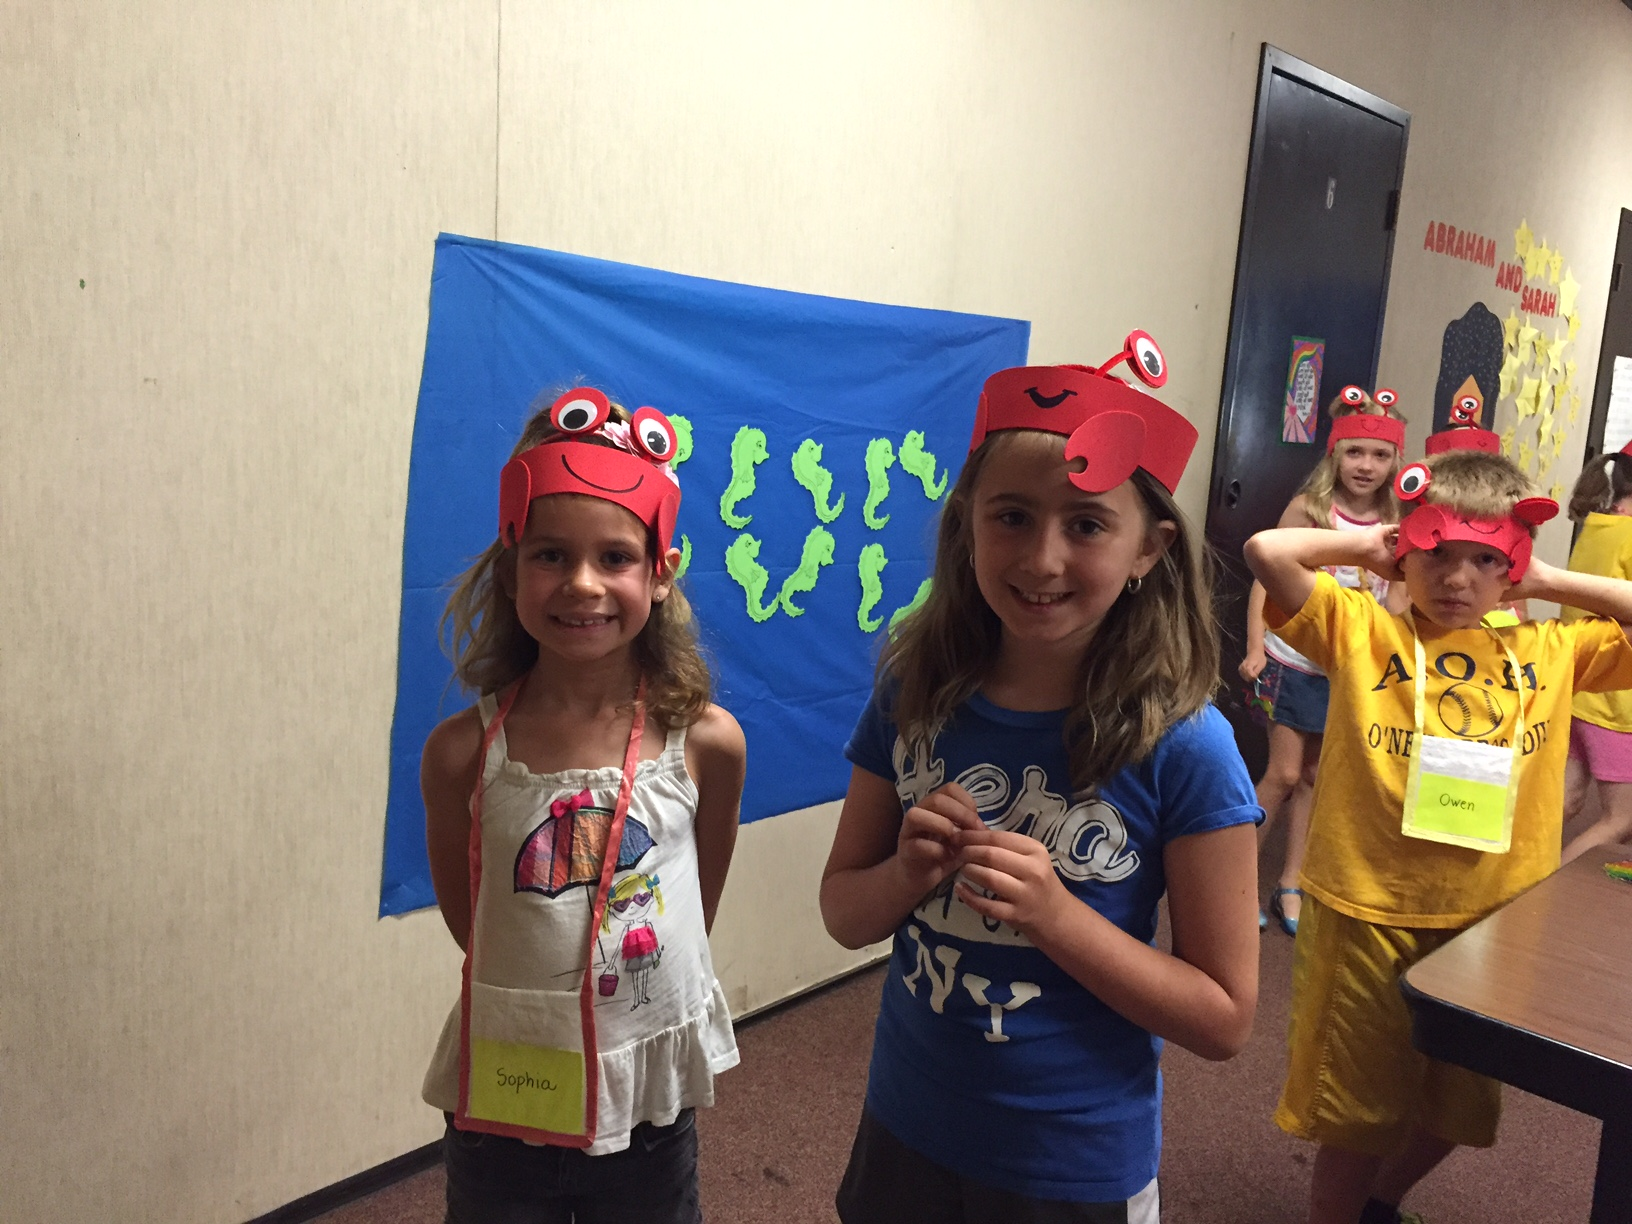 images/stories/HeaderImages/Frame2/Sophia and Isabella in crab hats.JPG